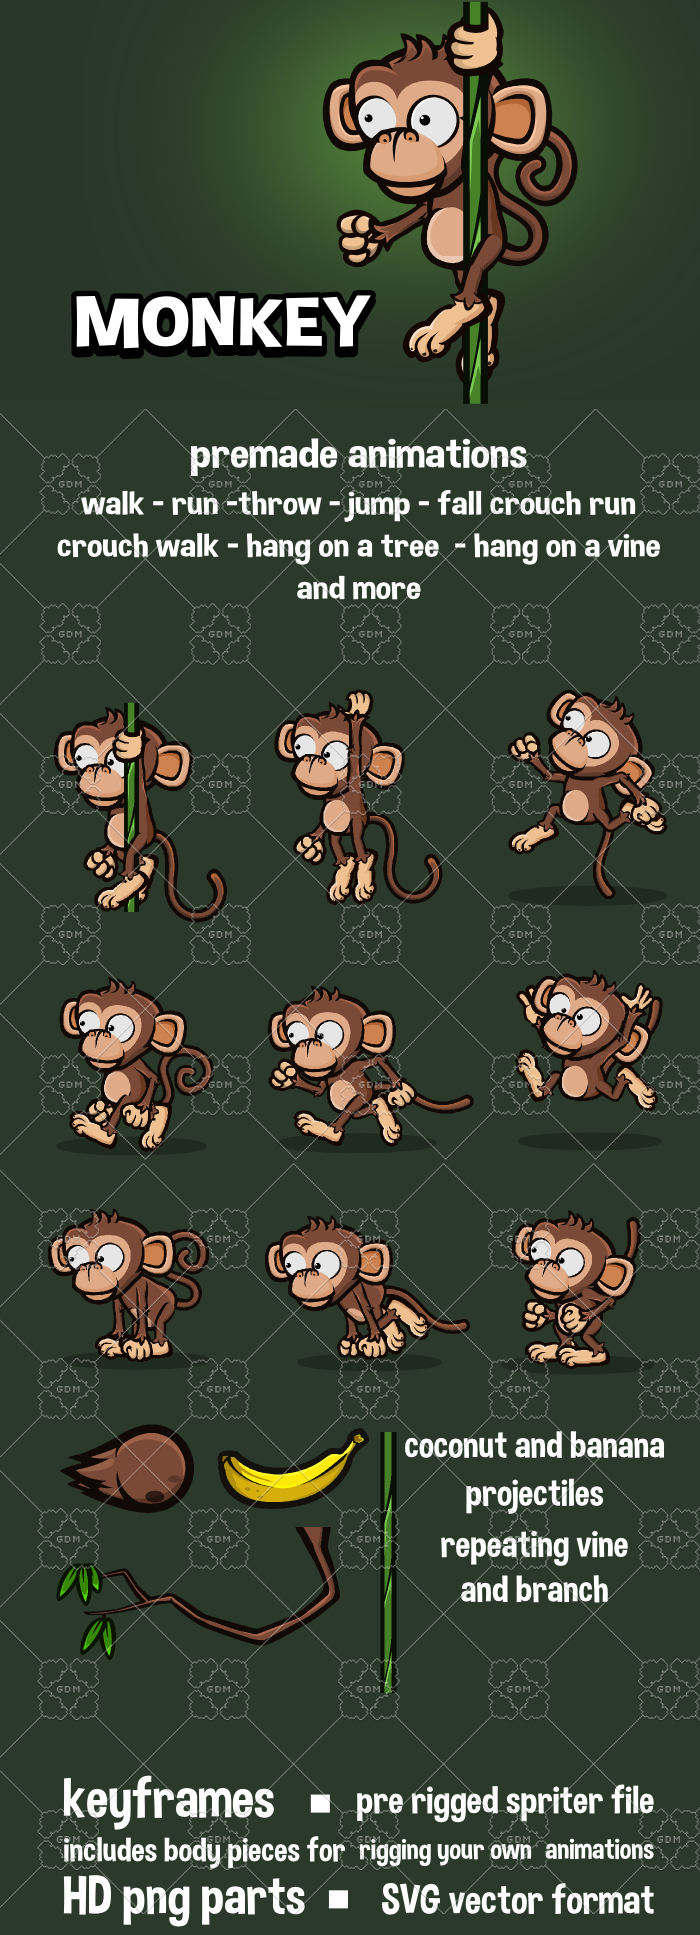 Animated 2D monkey sprite